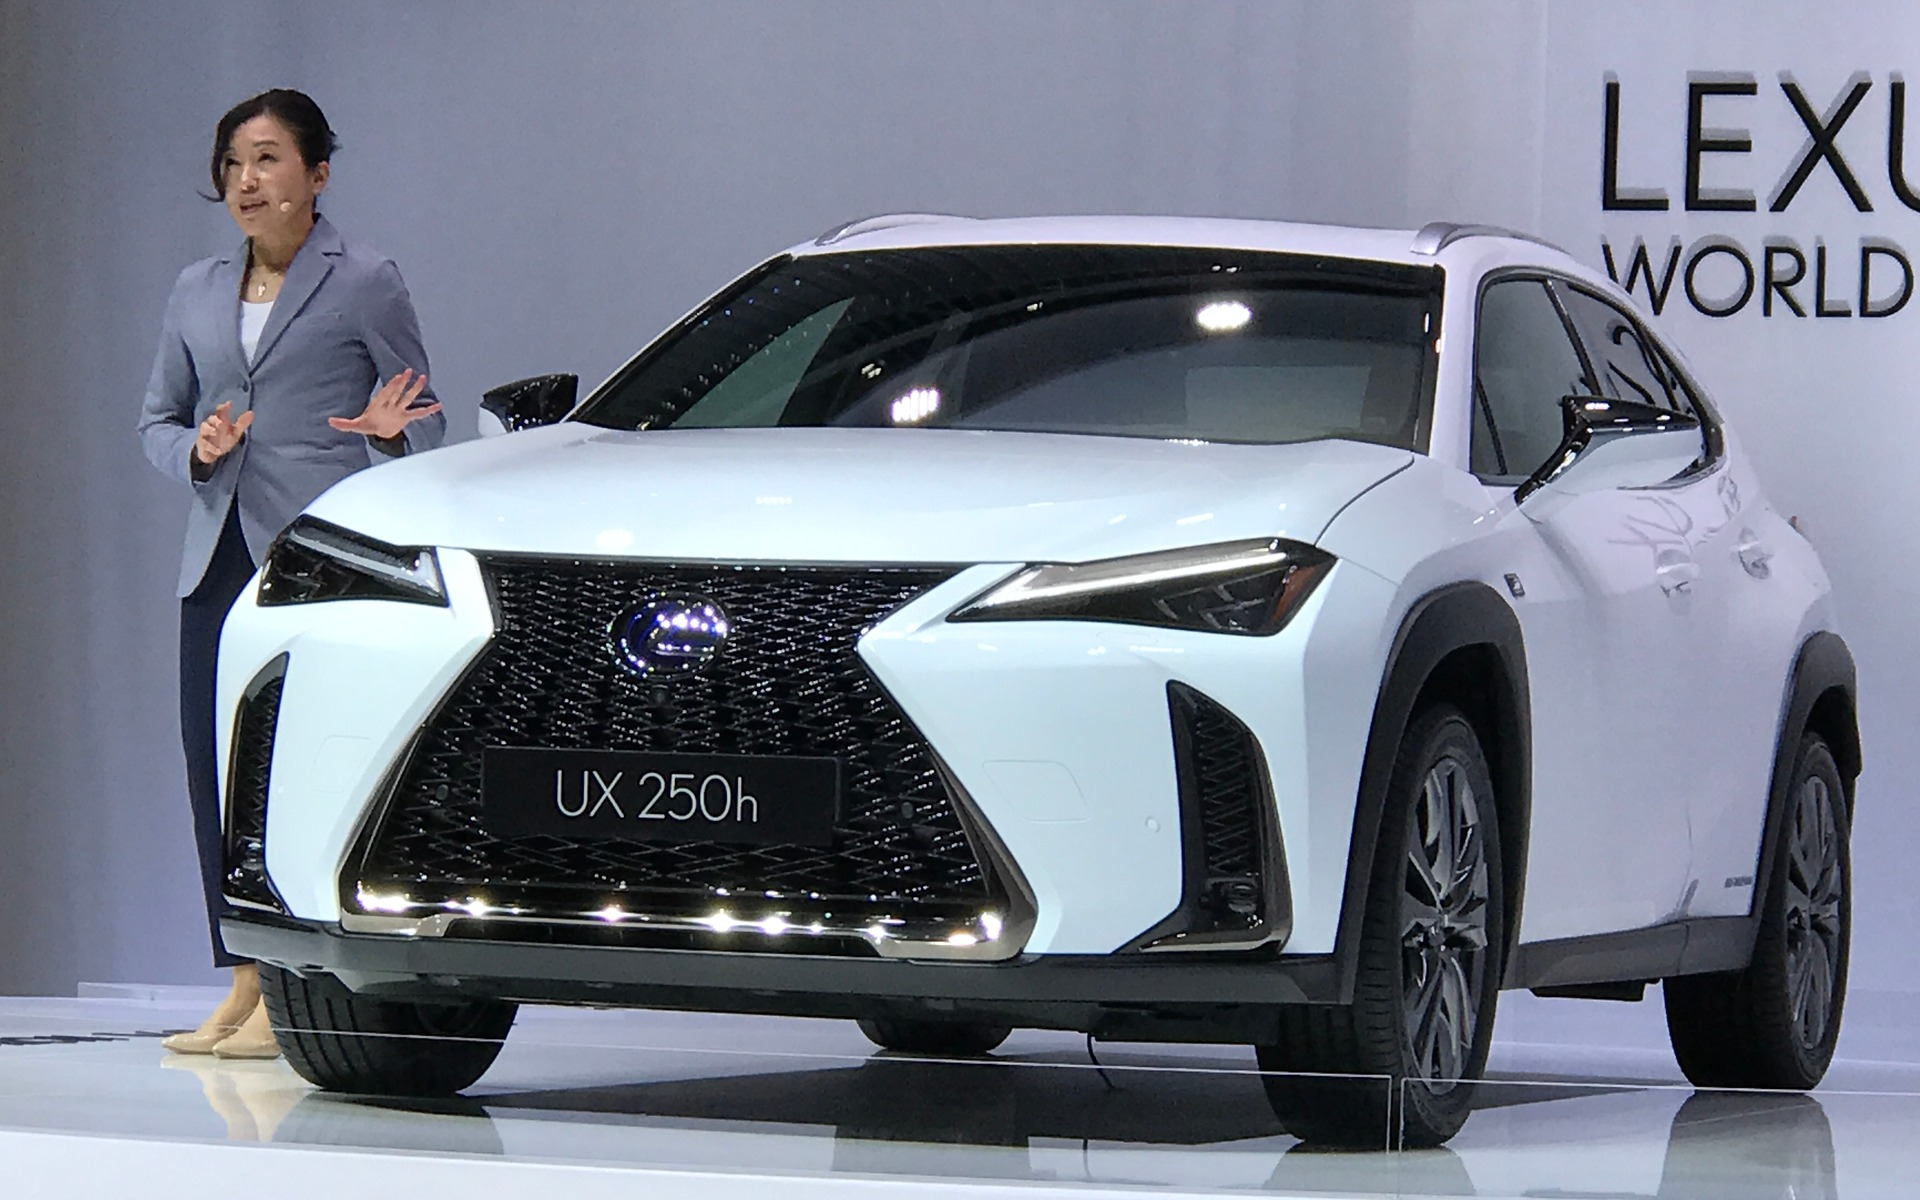 2019 Lexus UX: the Brand's New Entry-level SUV is Coming ...